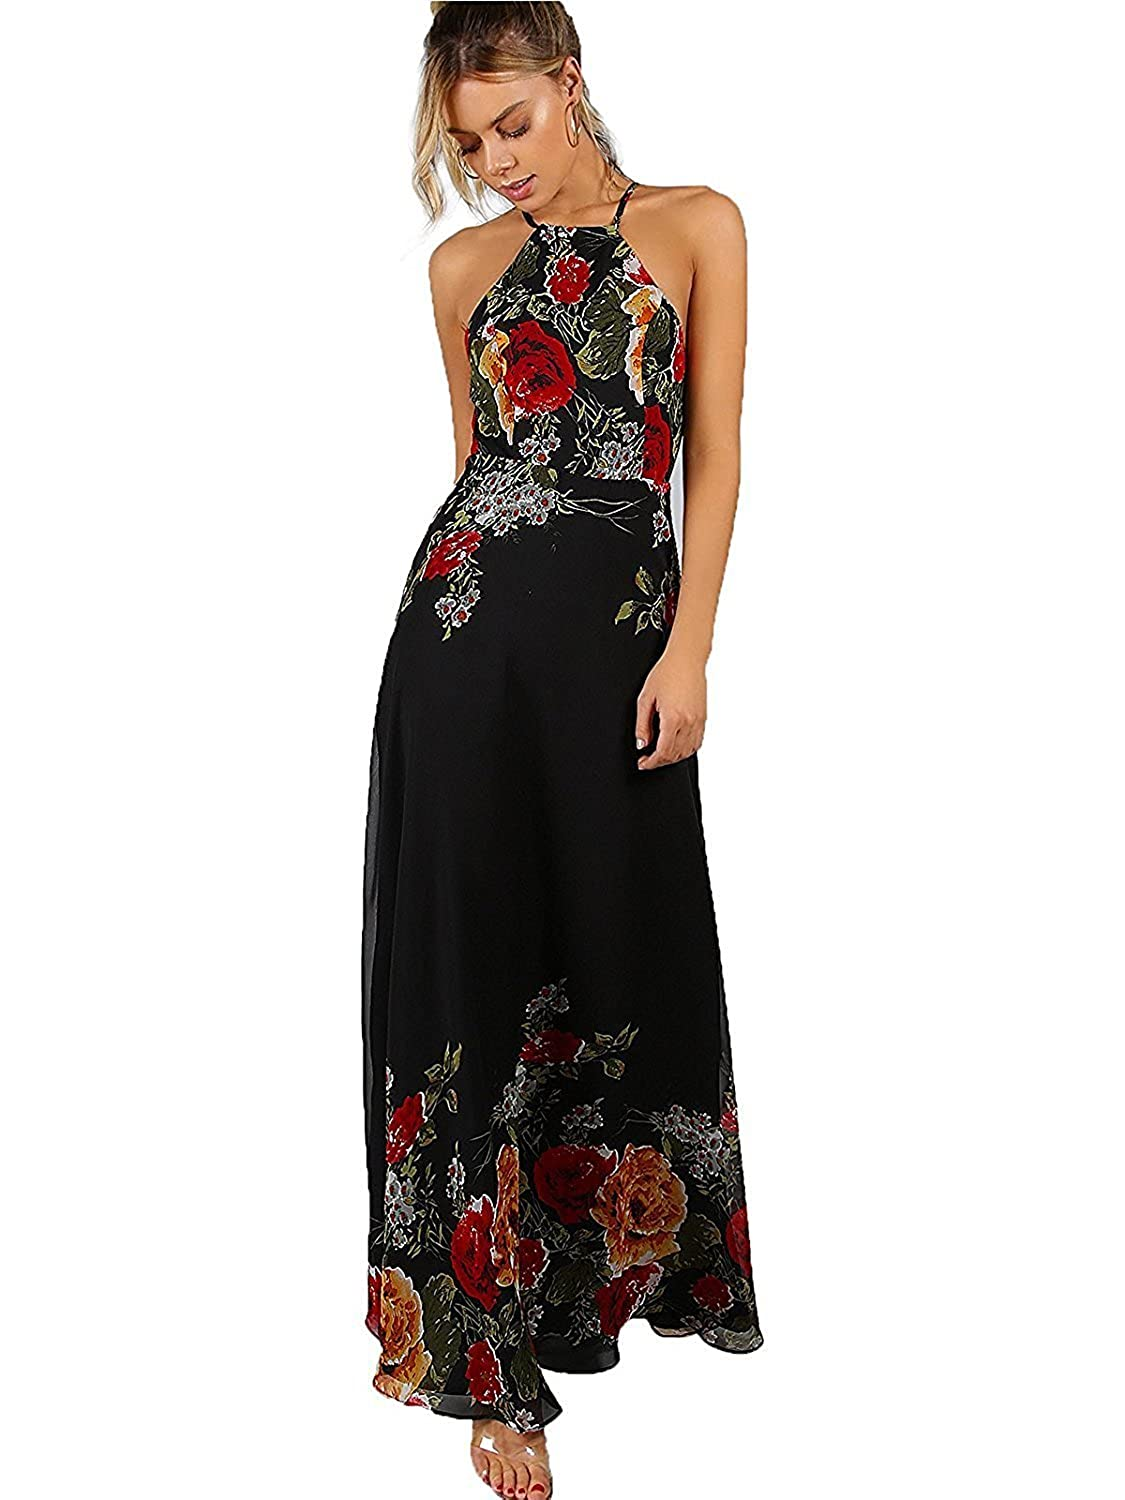 6801f6f7eb Amazon.com: Floerns Women's Sleeveless Halter Neck Vintage Floral Print Maxi  Dress: Clothing